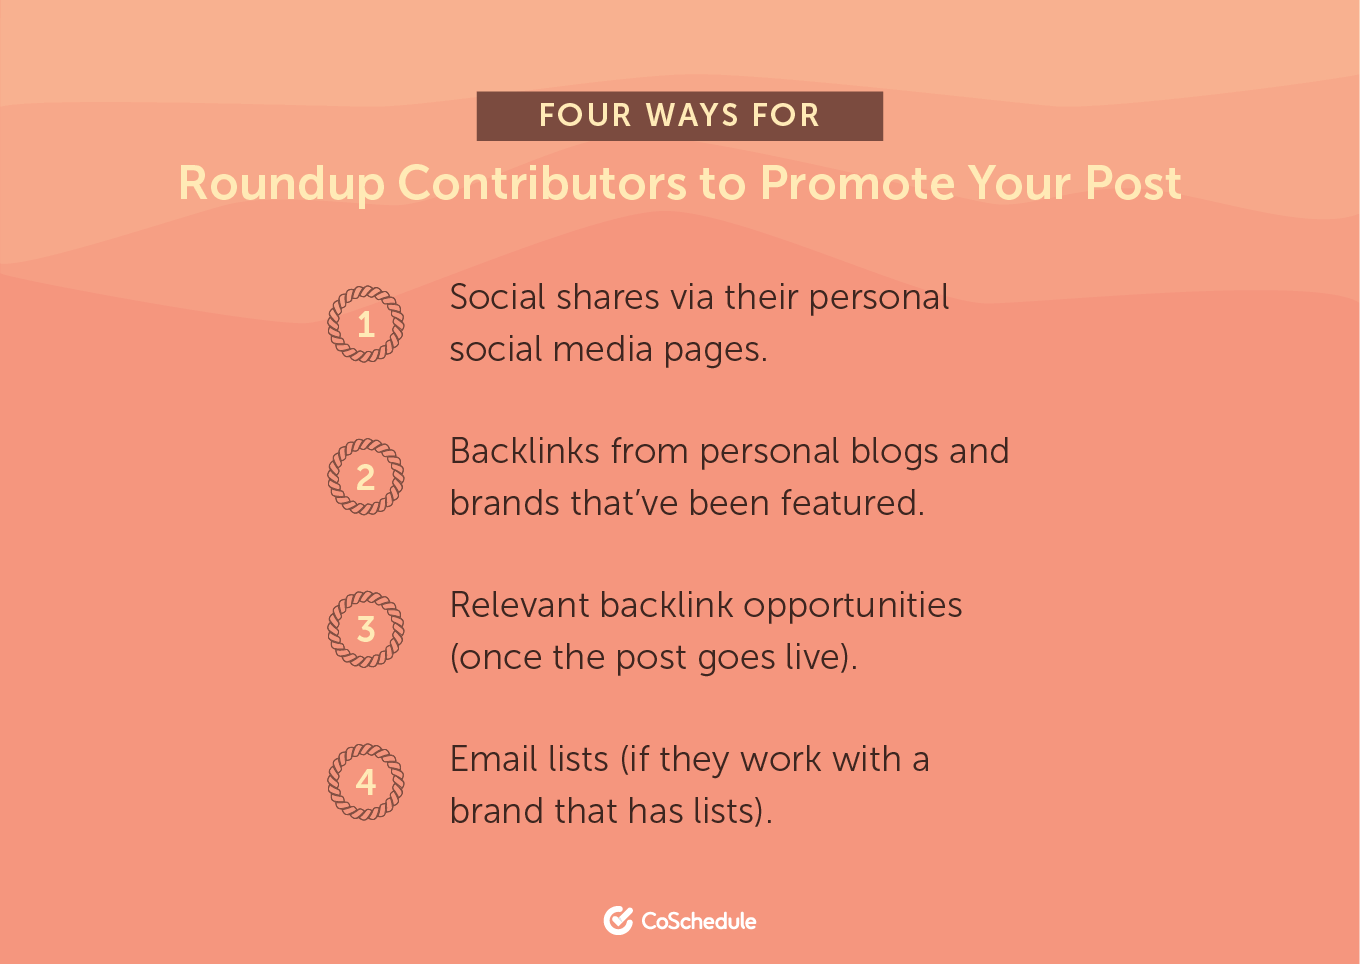 Four Ways for Roundup Contributors to Promote Your Posts